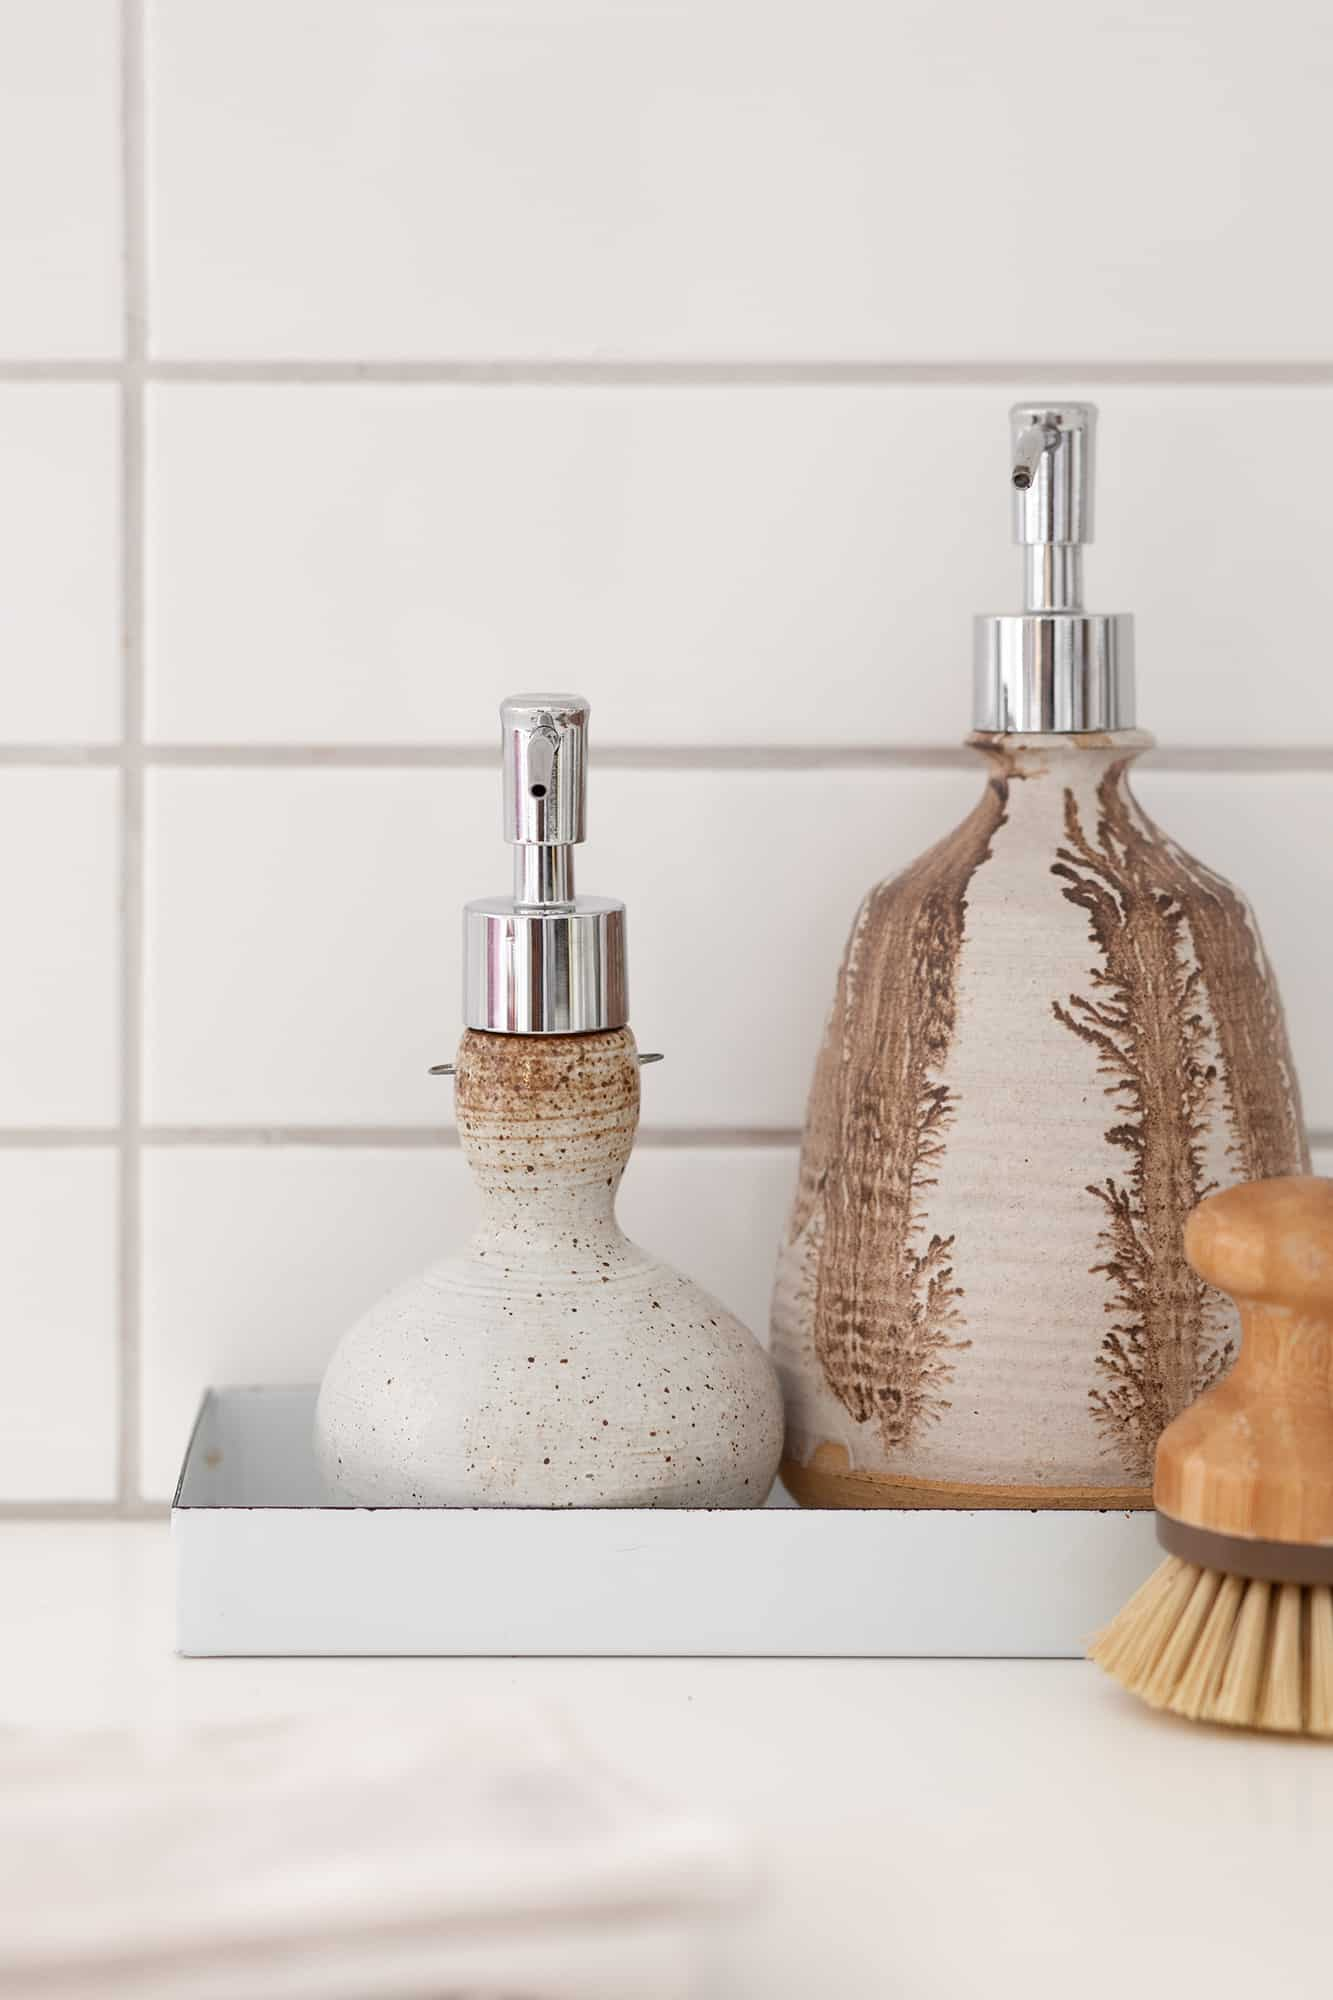 How to Make a Soap Dispenser